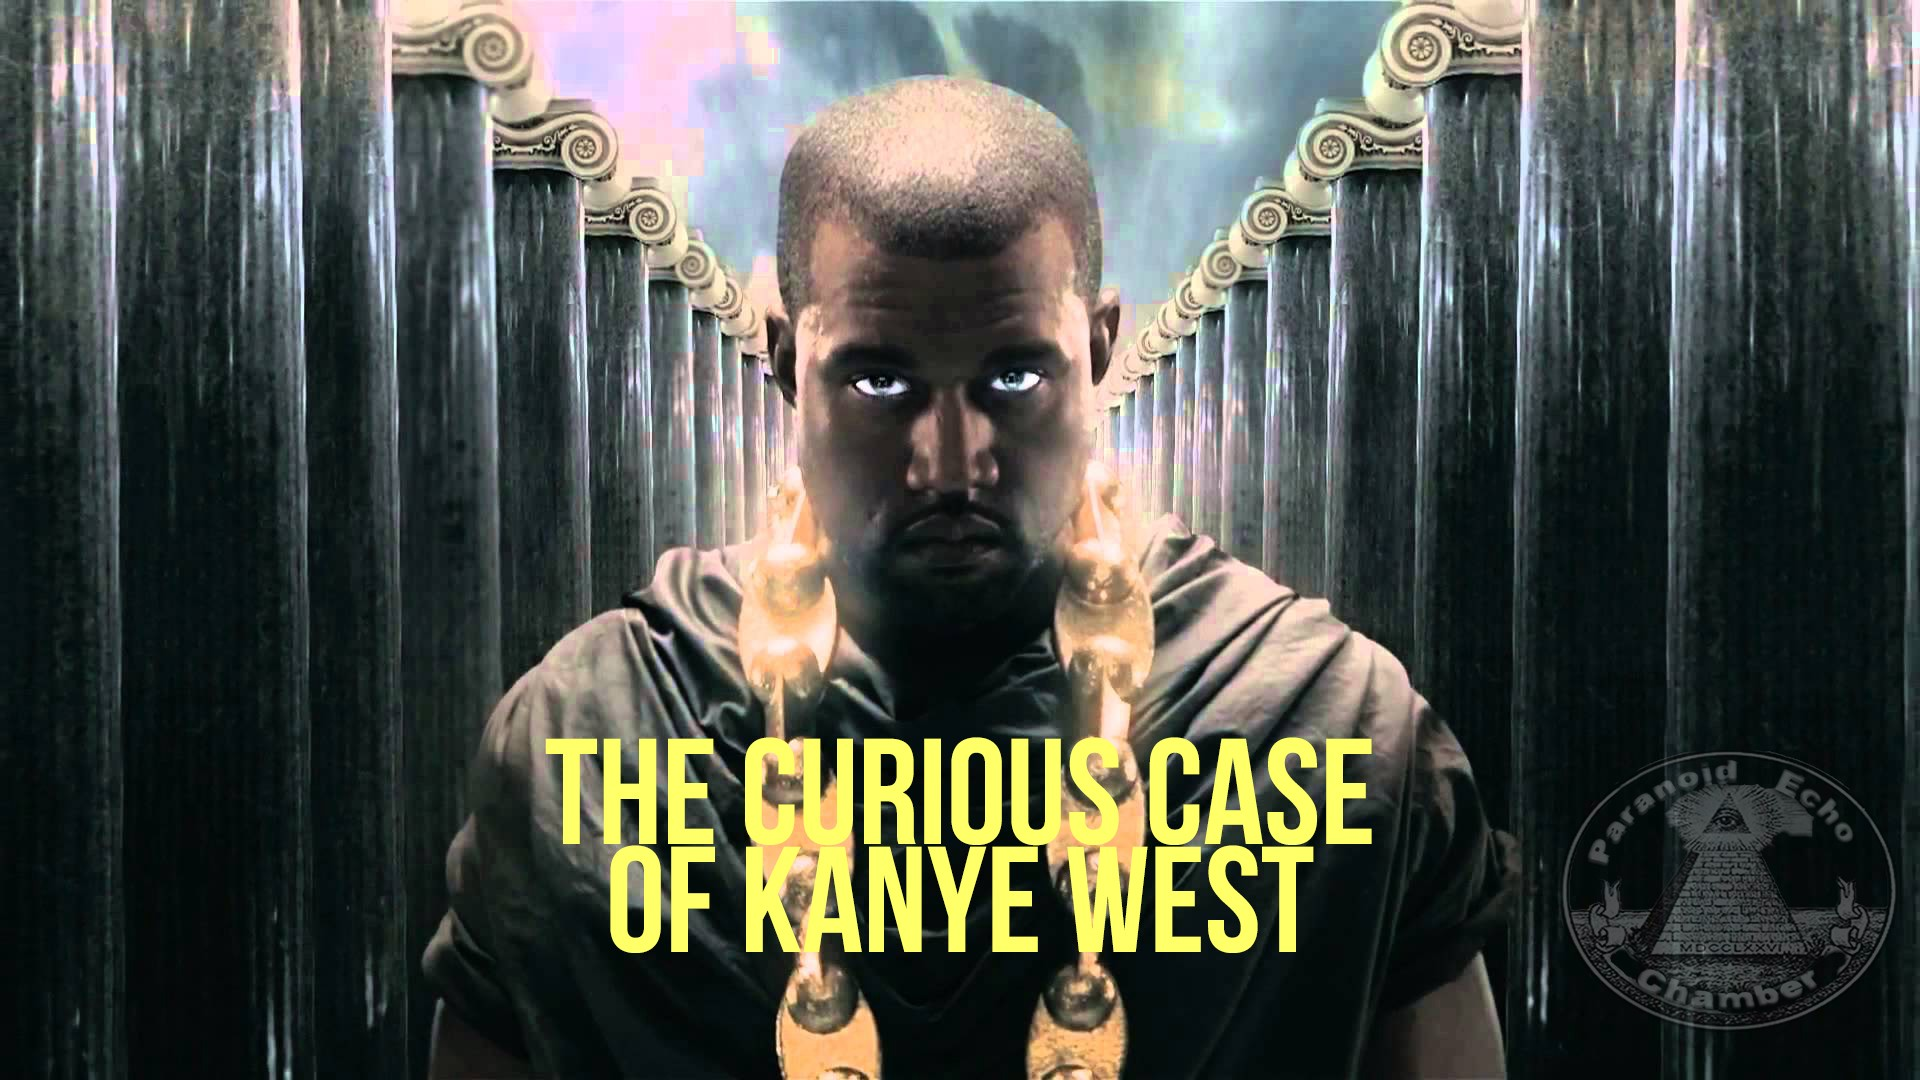 The Curious Case Of Kanye West What S Really Going On With Kanye West By David Baer Medium